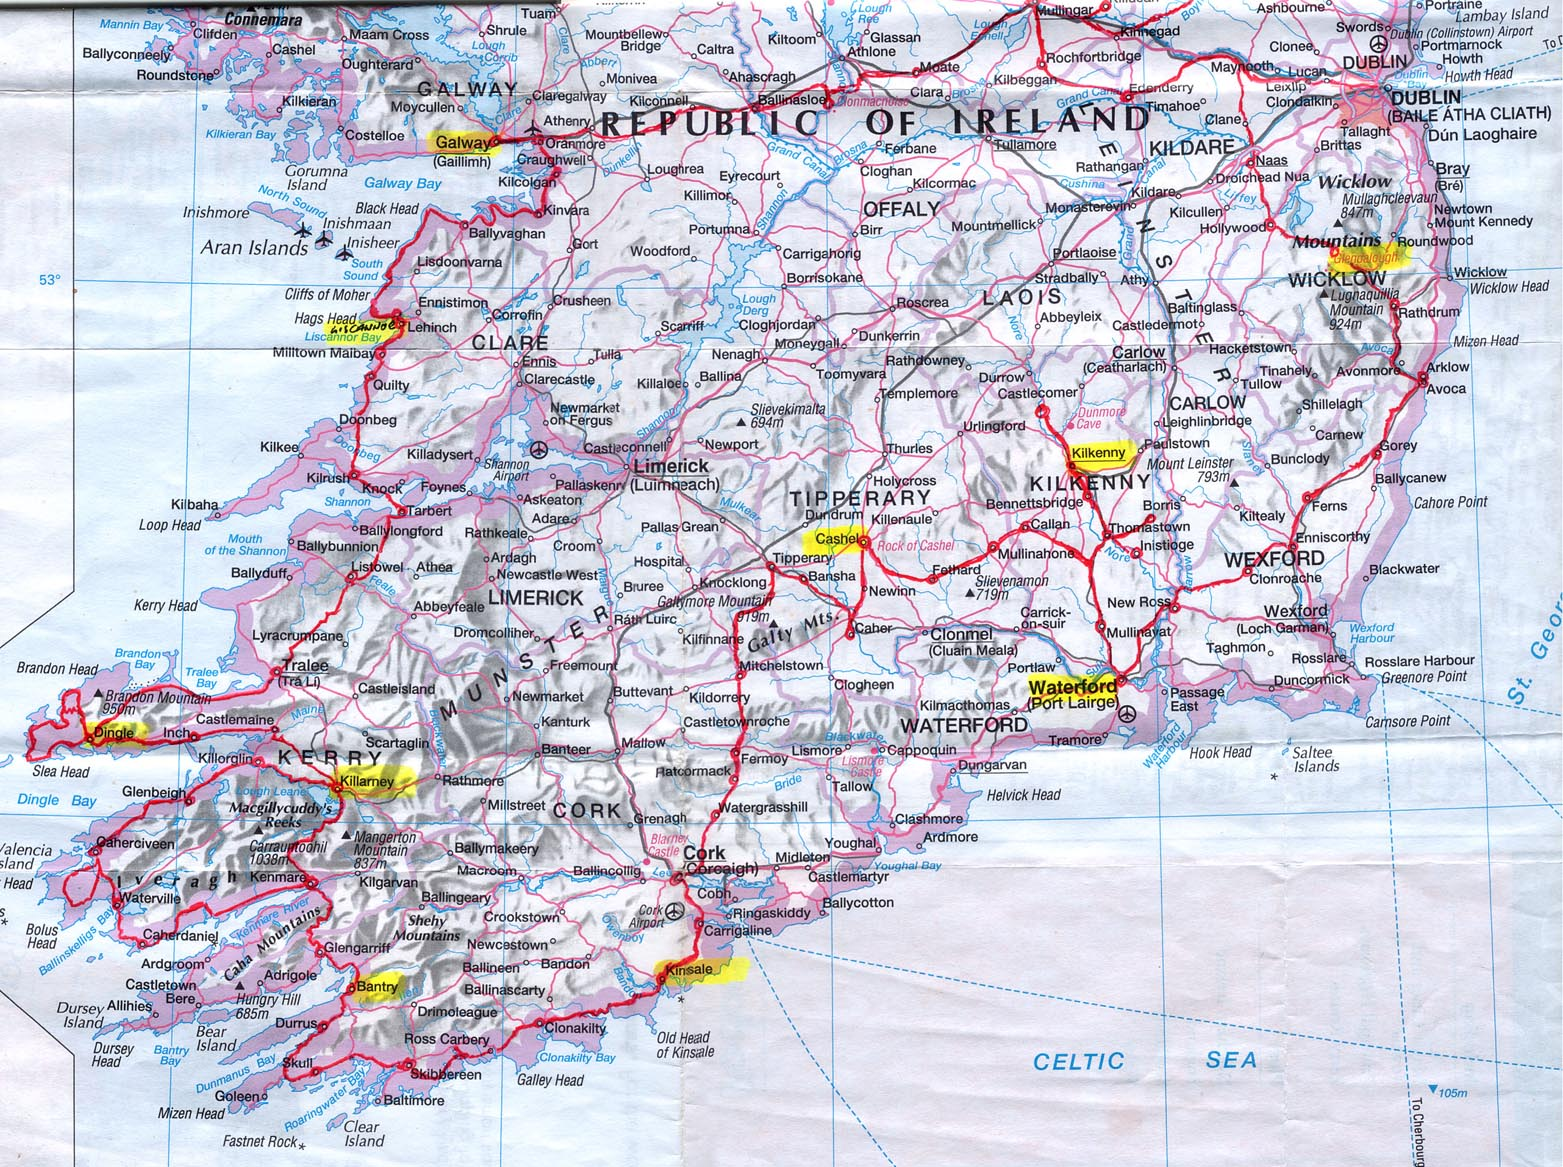 Bennett Travel Blog TRAVEL MAPS EUROPE and IRELAND – Europe Travel Maps